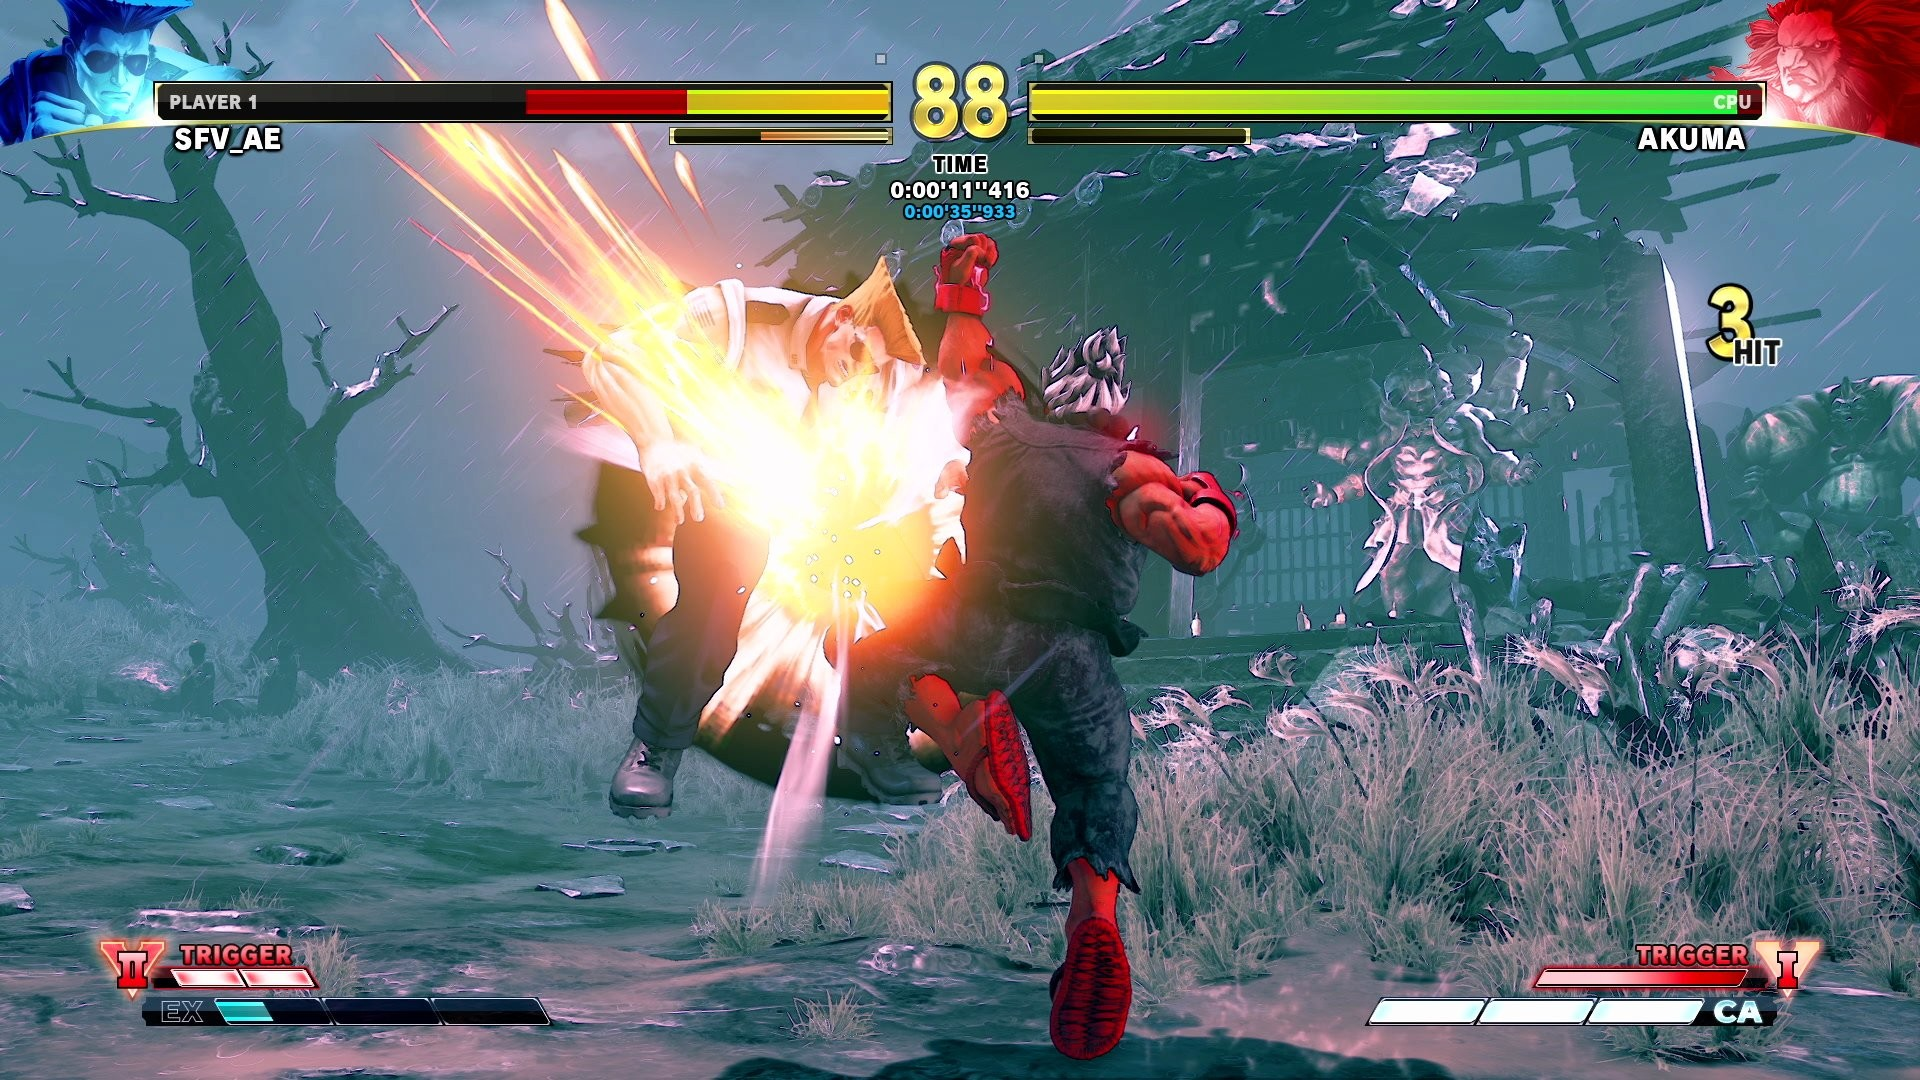 """Res: 1920x1080, Street Fighter on Twitter: """"Shin Akuma challenges any fighter brave enough  to face him in Extra Battle Mode until 1/21! Have you defeated him yet?"""